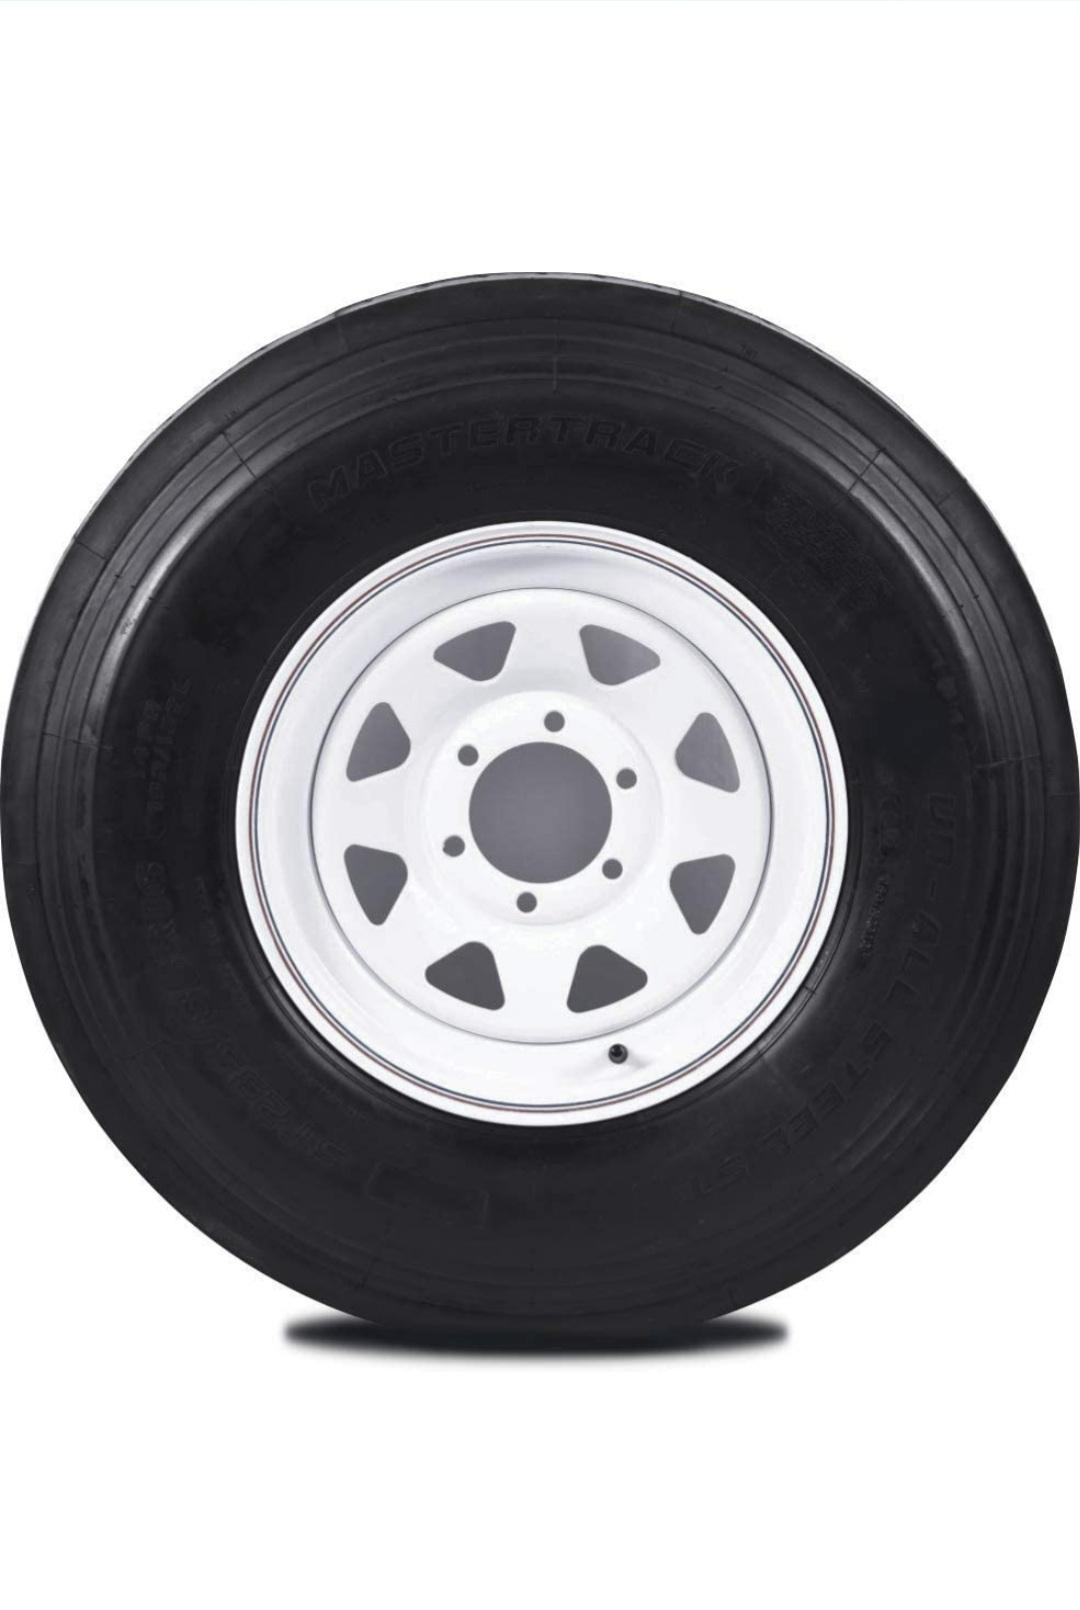 ST235/80R16 Mastertrack- 3 colors- Rim and Wheel